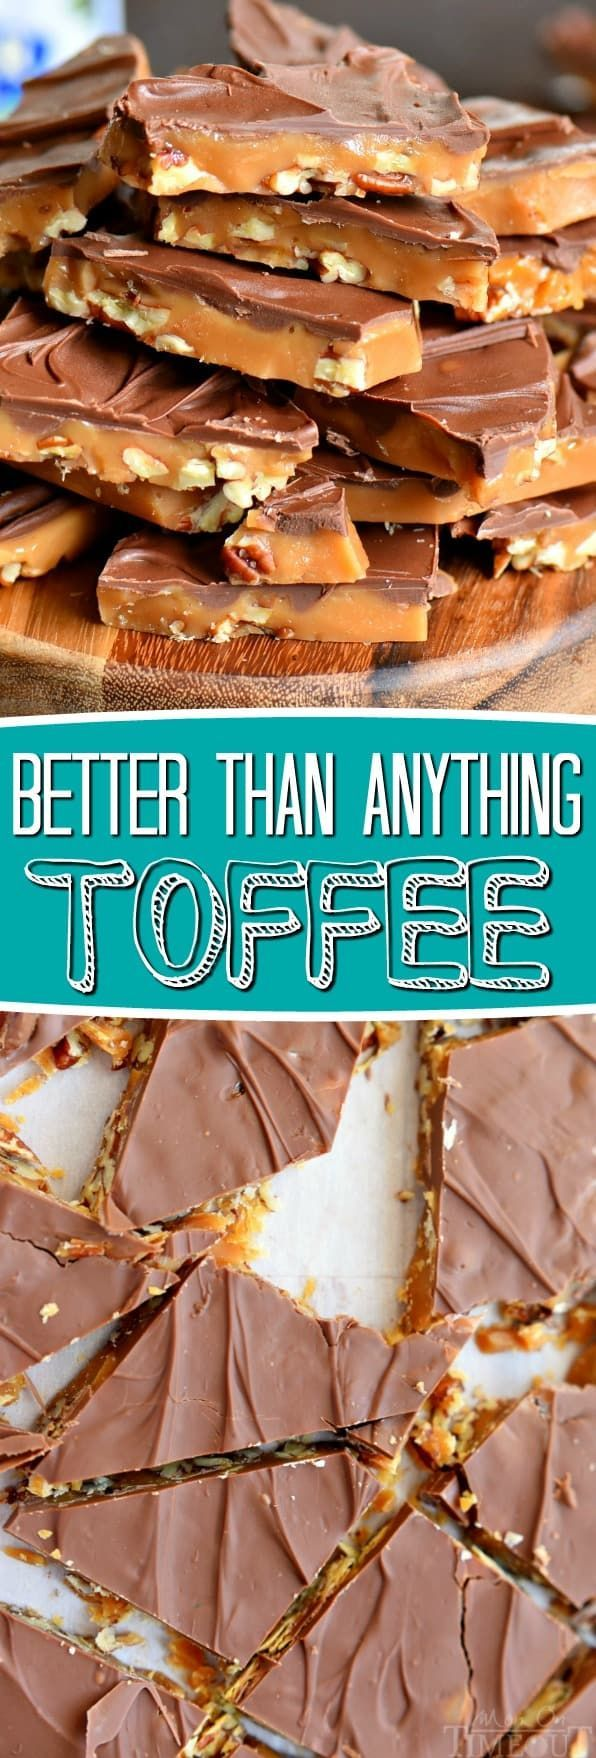 The best toffee recipe EVER!Sweet milk chocolate, crunchy pecans, and rich, buttery toffee - what's not to love? This Better Than Anything Toffee is easy to make and makes the perfect treat OR gift year-round!